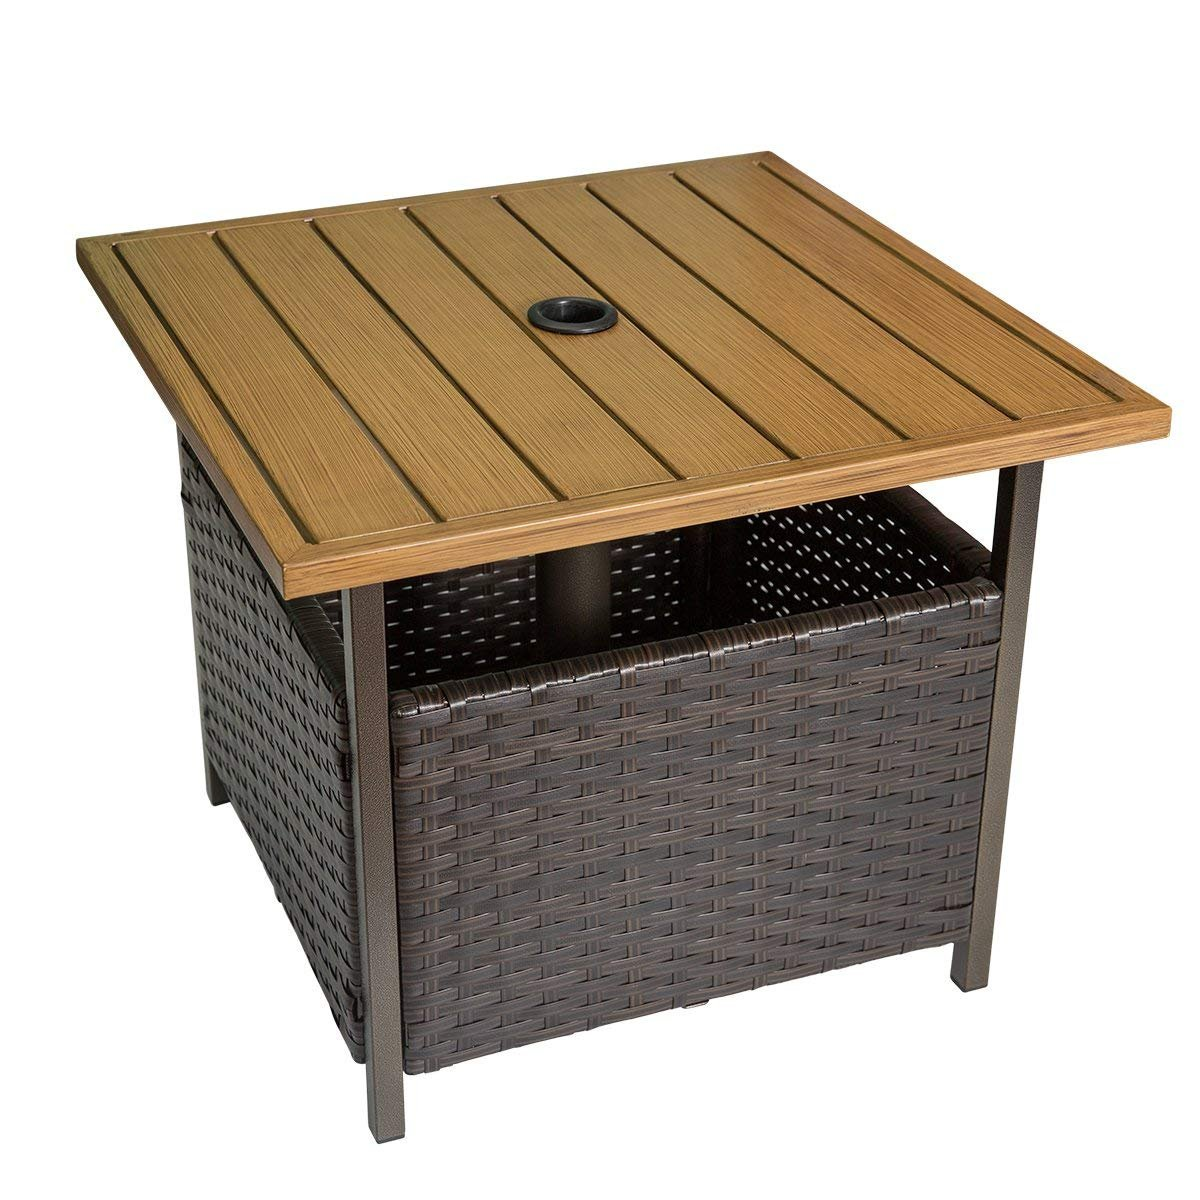 Marble Field Patio Wicker Bistro Dining Table, Square Umbrella Table with Storage Space, Garden Leisure Coffee Side Table by Marble Field